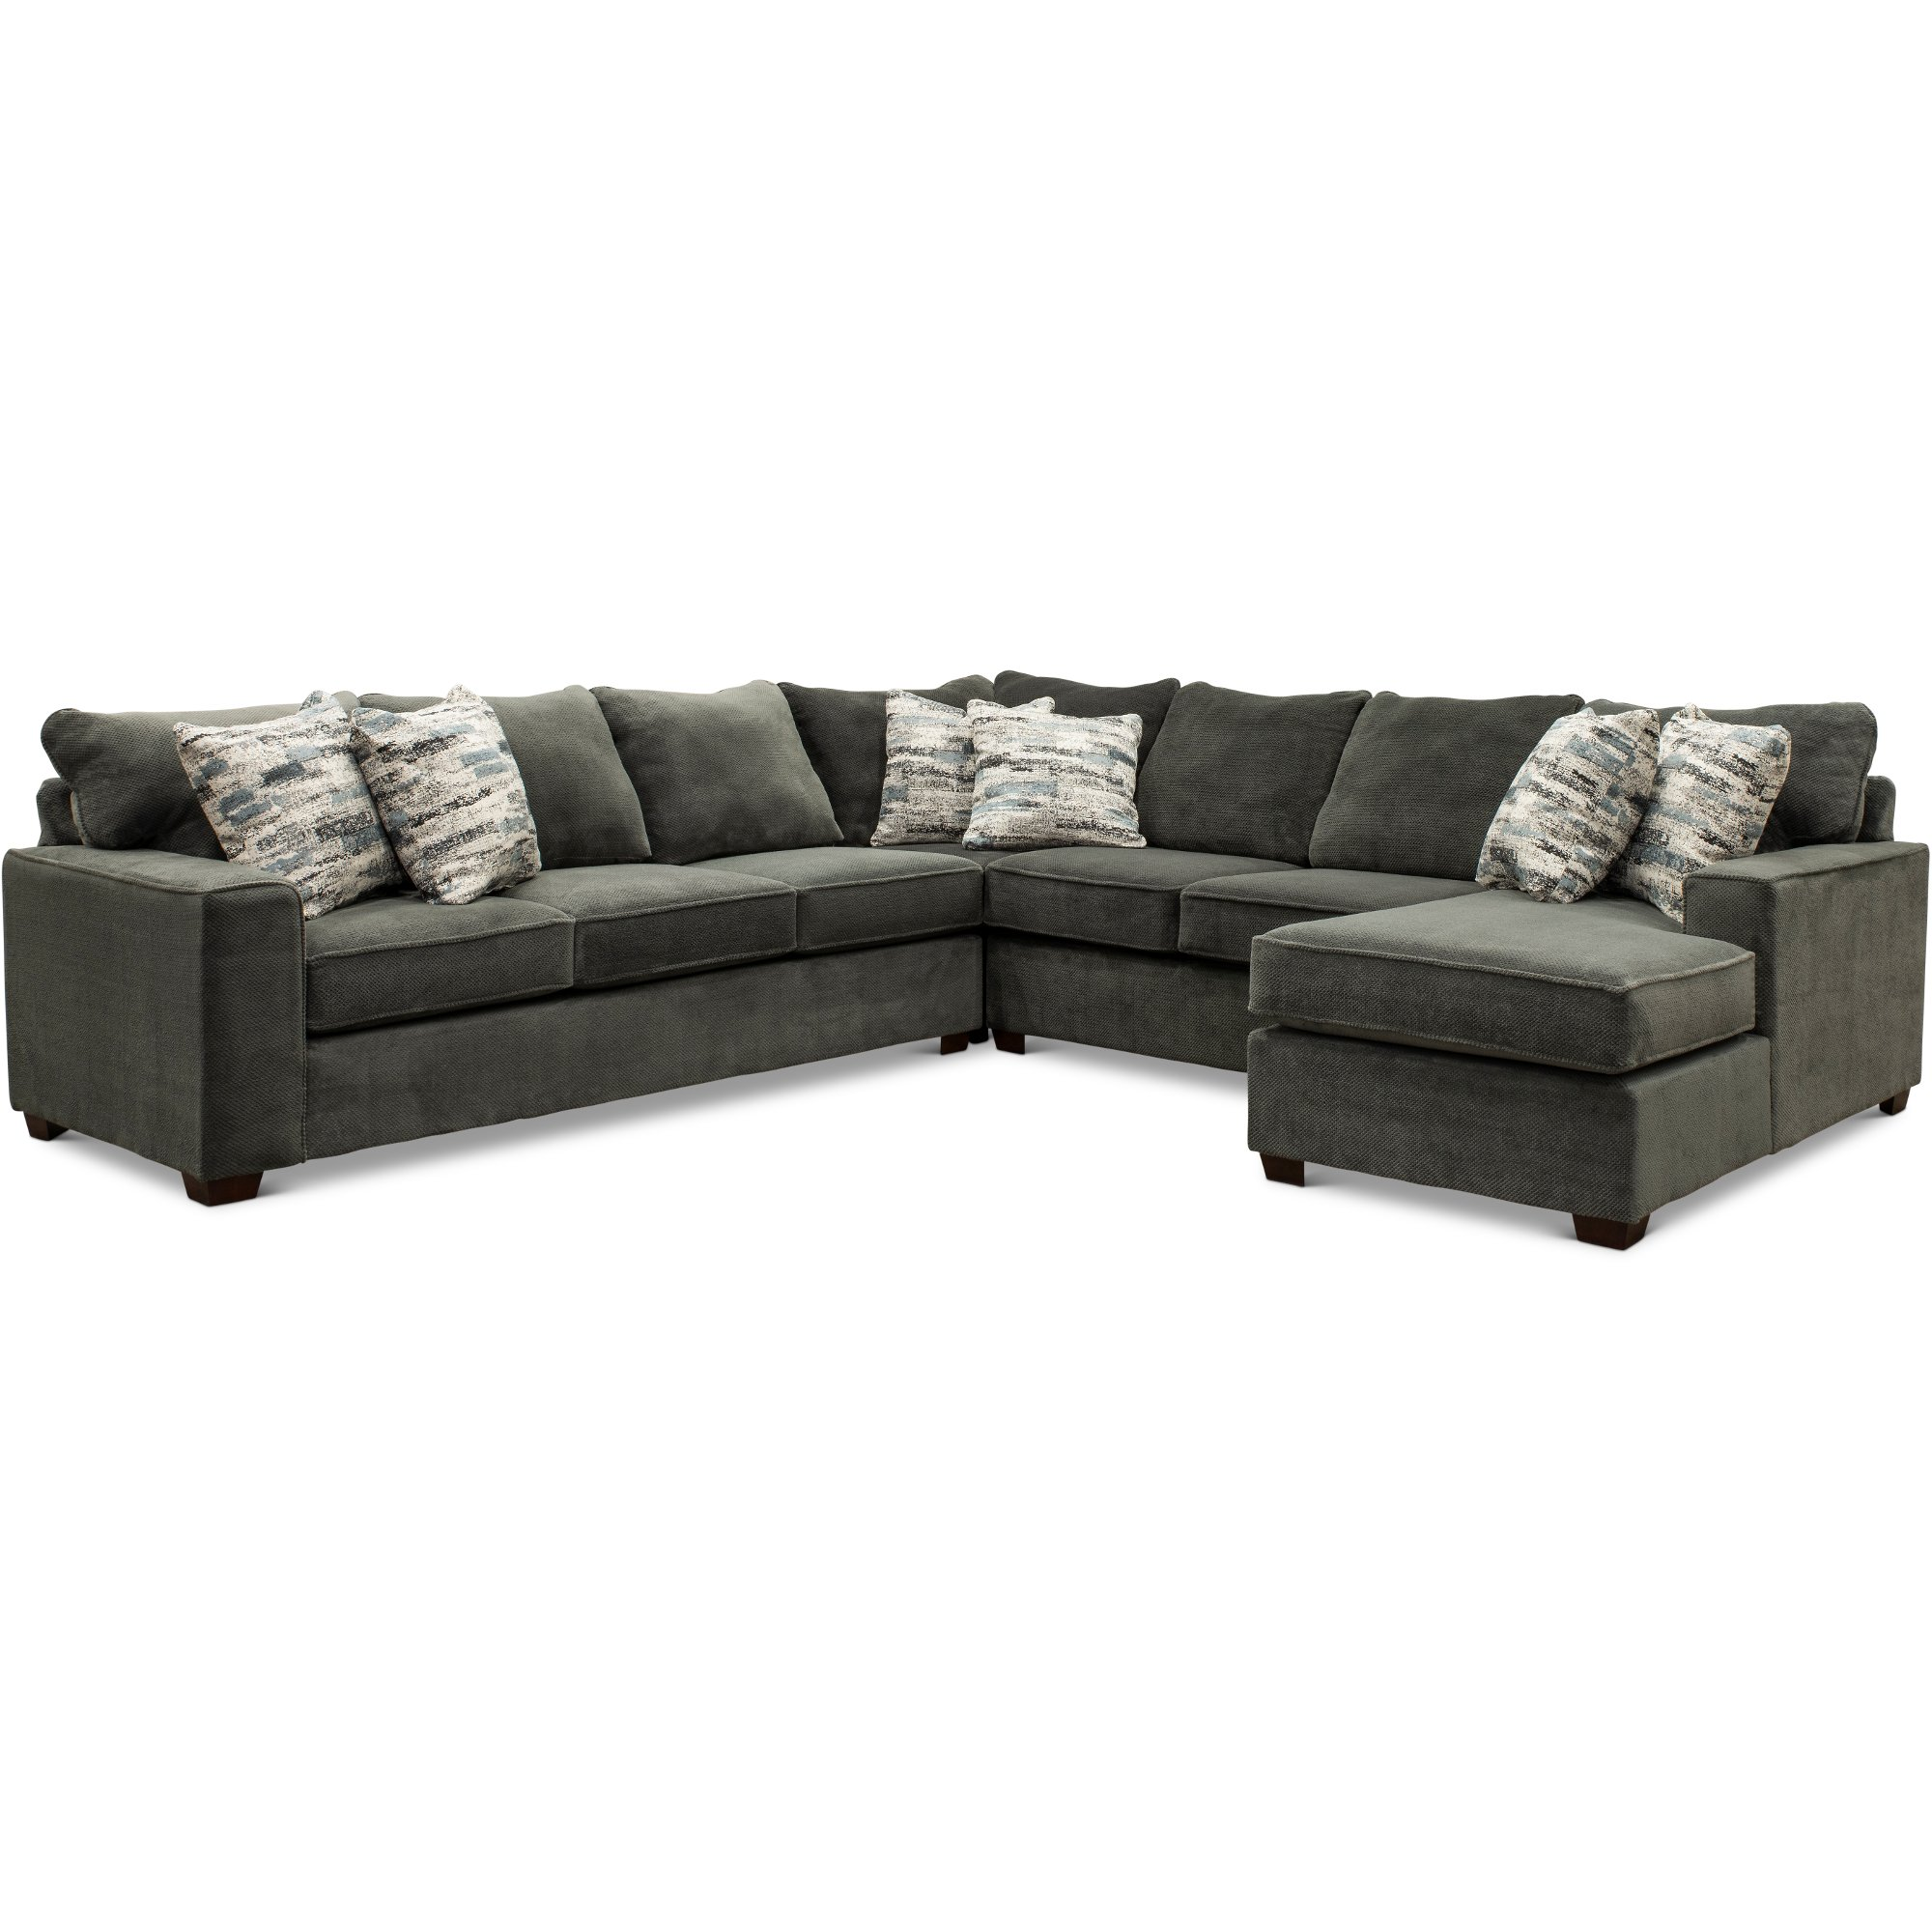 Dark Gray 4 Piece Sectional Sofa With Laf Sofa Autumn In 2020 Sectional Sofa Sofa Furniture